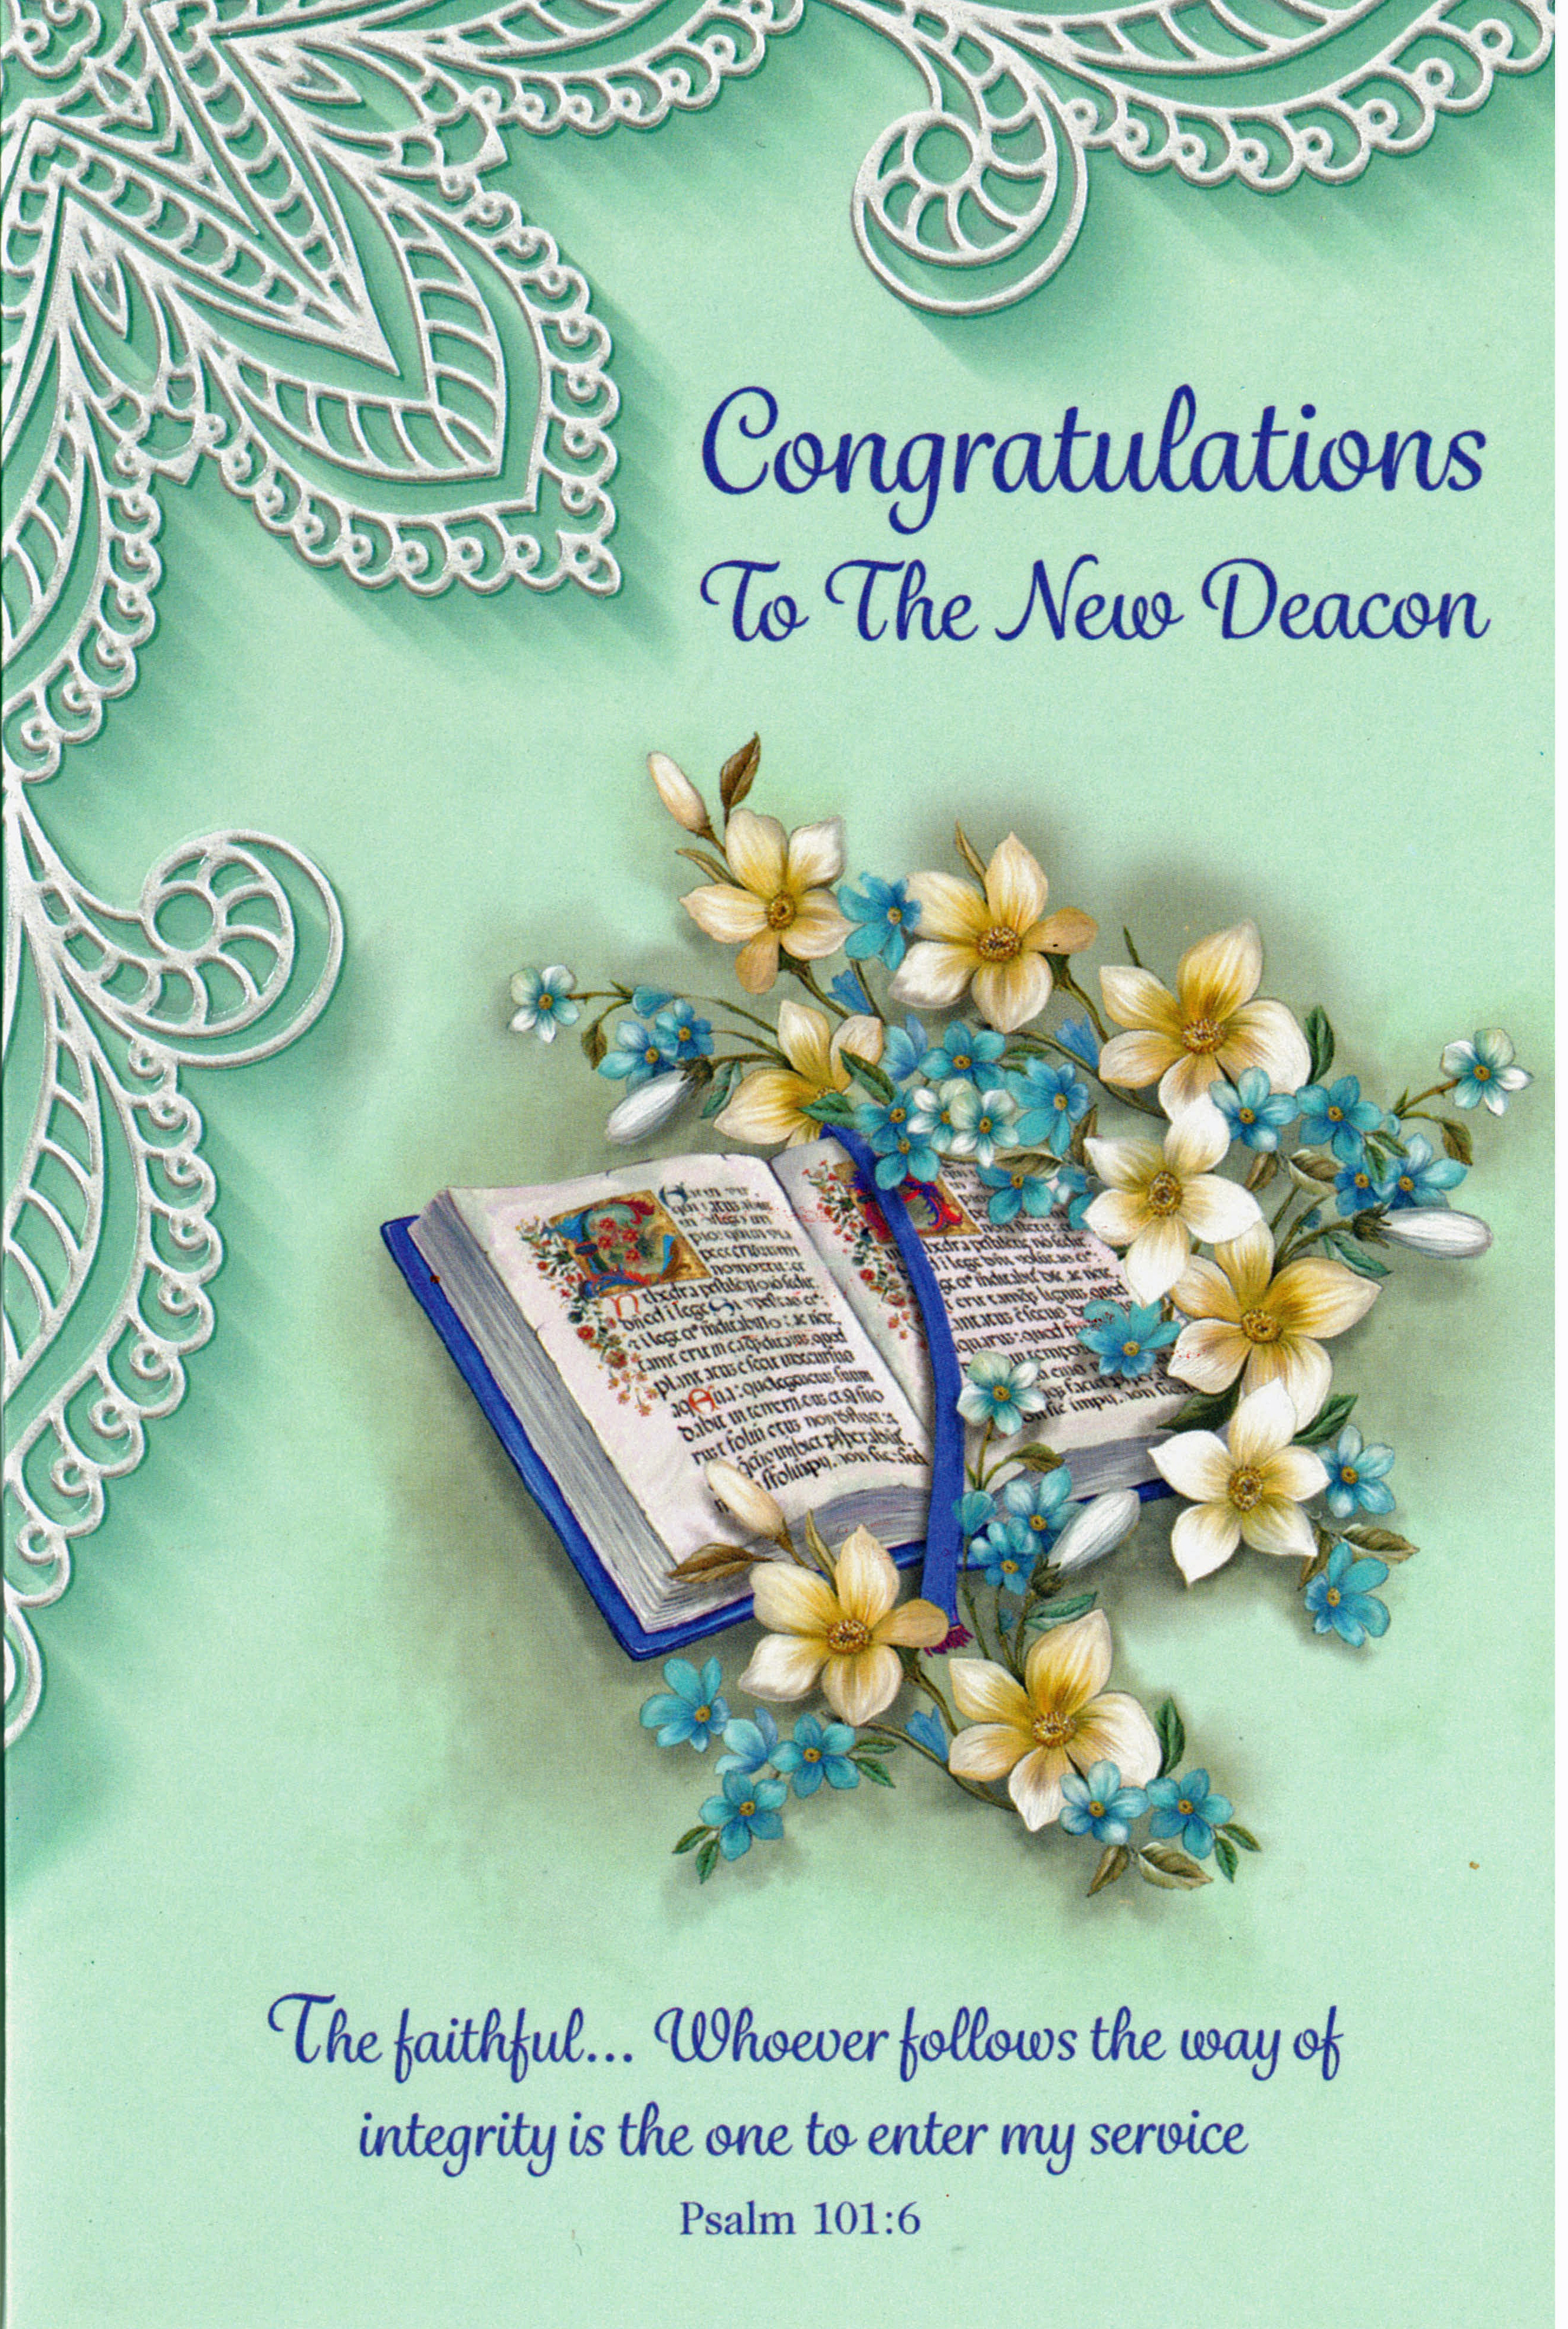 Congratulations To The New Deacon Greeting Card- DEAC89986